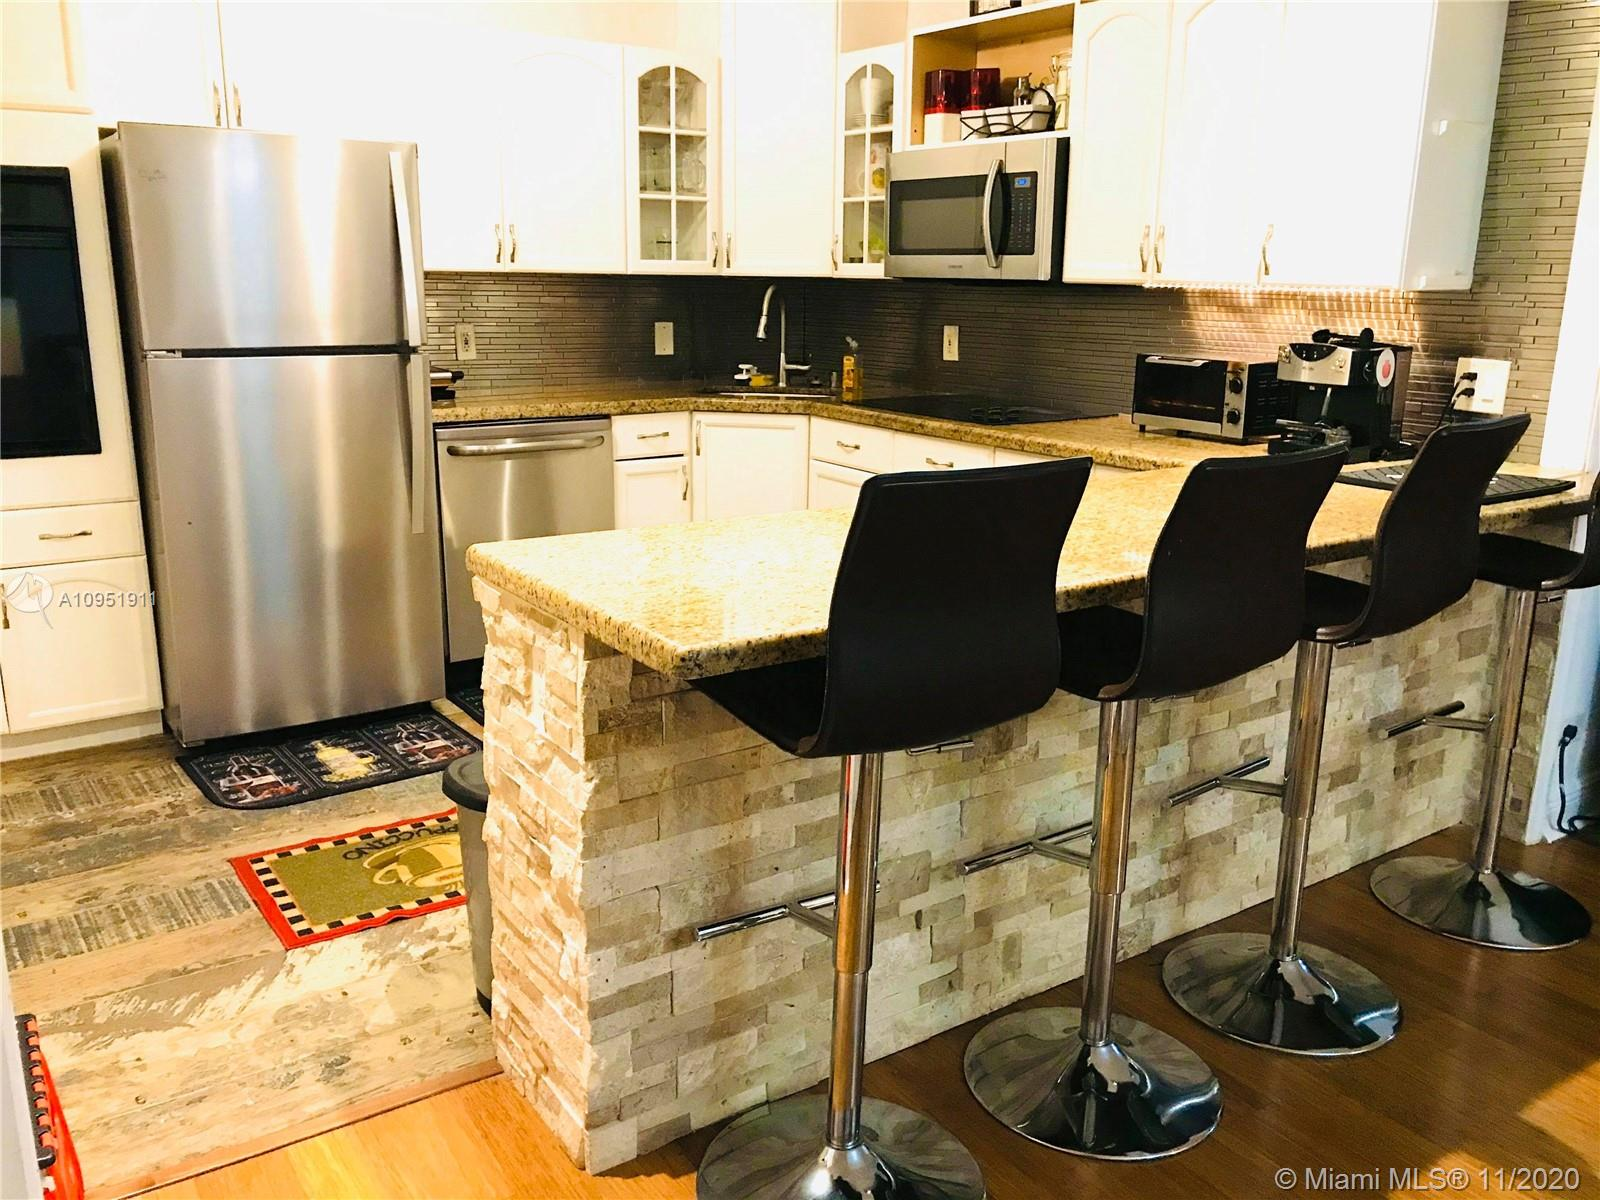 Beautiful updated 2/2 in Longwood Towers on gorgeous Bay Harbor Islands. This end unit has a private balcony with tranquil partial water view. Lots of light, hardwood floors, granite kitchen countertops and stainless appliances. Split bedroom plan with large closets. Master bedroom has three (3) closets and private bathroom with white porcelain floor. Separate closet in hall for a/c air handler, BONUS additional storage space on first floor, private parking spot, and free visitor's parking! Short stroll to top A+ school Ruth Broad K-8, Bal Harbor Shops, wonderful dining, lovely parks, and phenomenal beaches. Low maintenance fee includes water, garbage and pool. Rentals allowed after first 2 years.